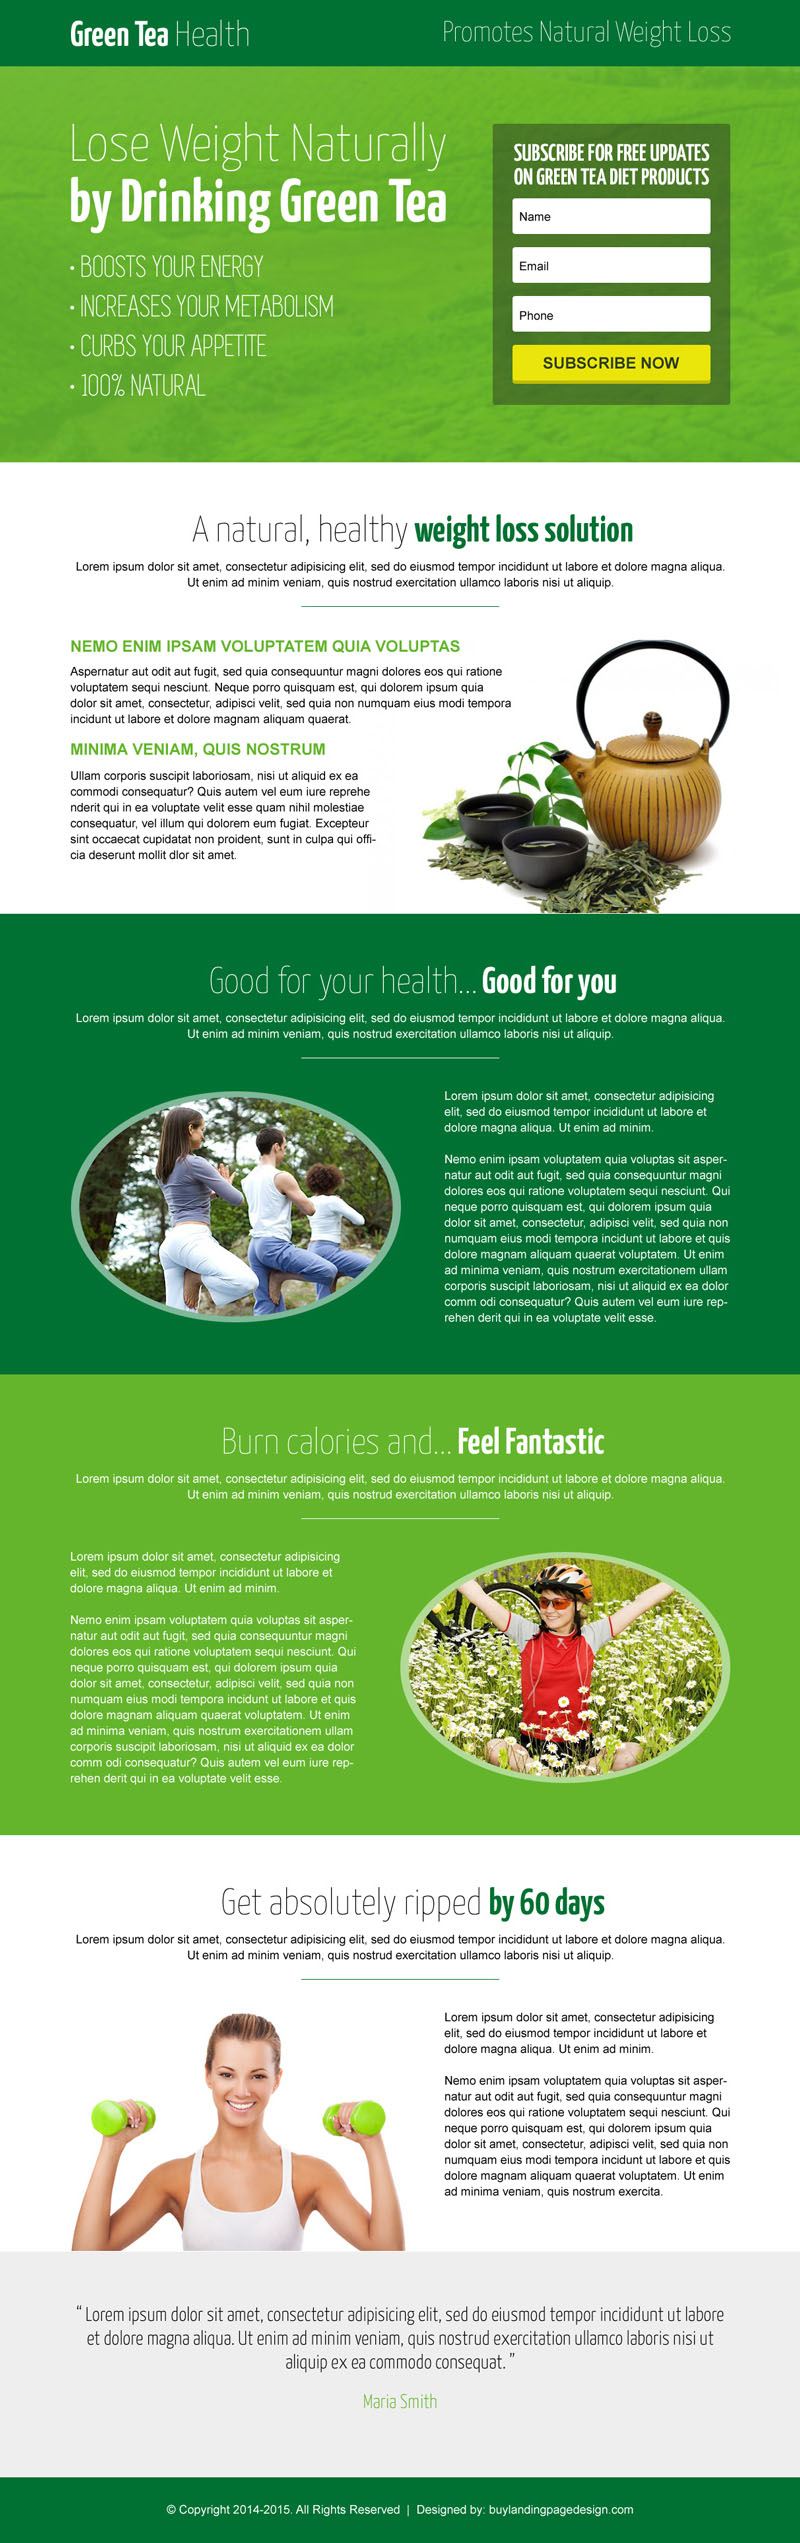 green-tea-natural-weight-loss-lead-capture-landing-page-design-templates-037